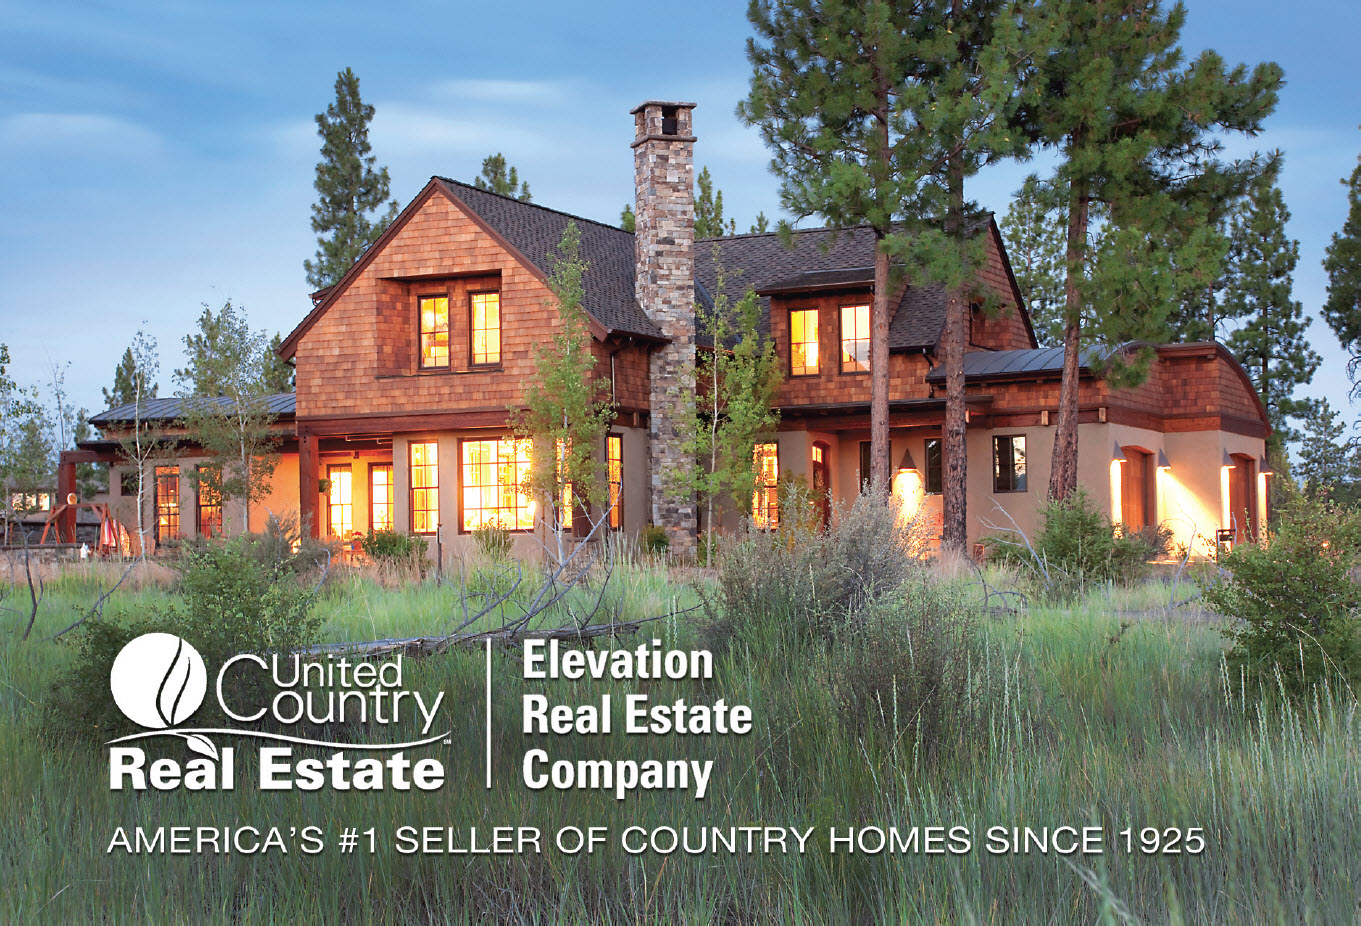 6 Reasons To List With United Country Elevation Real Estate Company